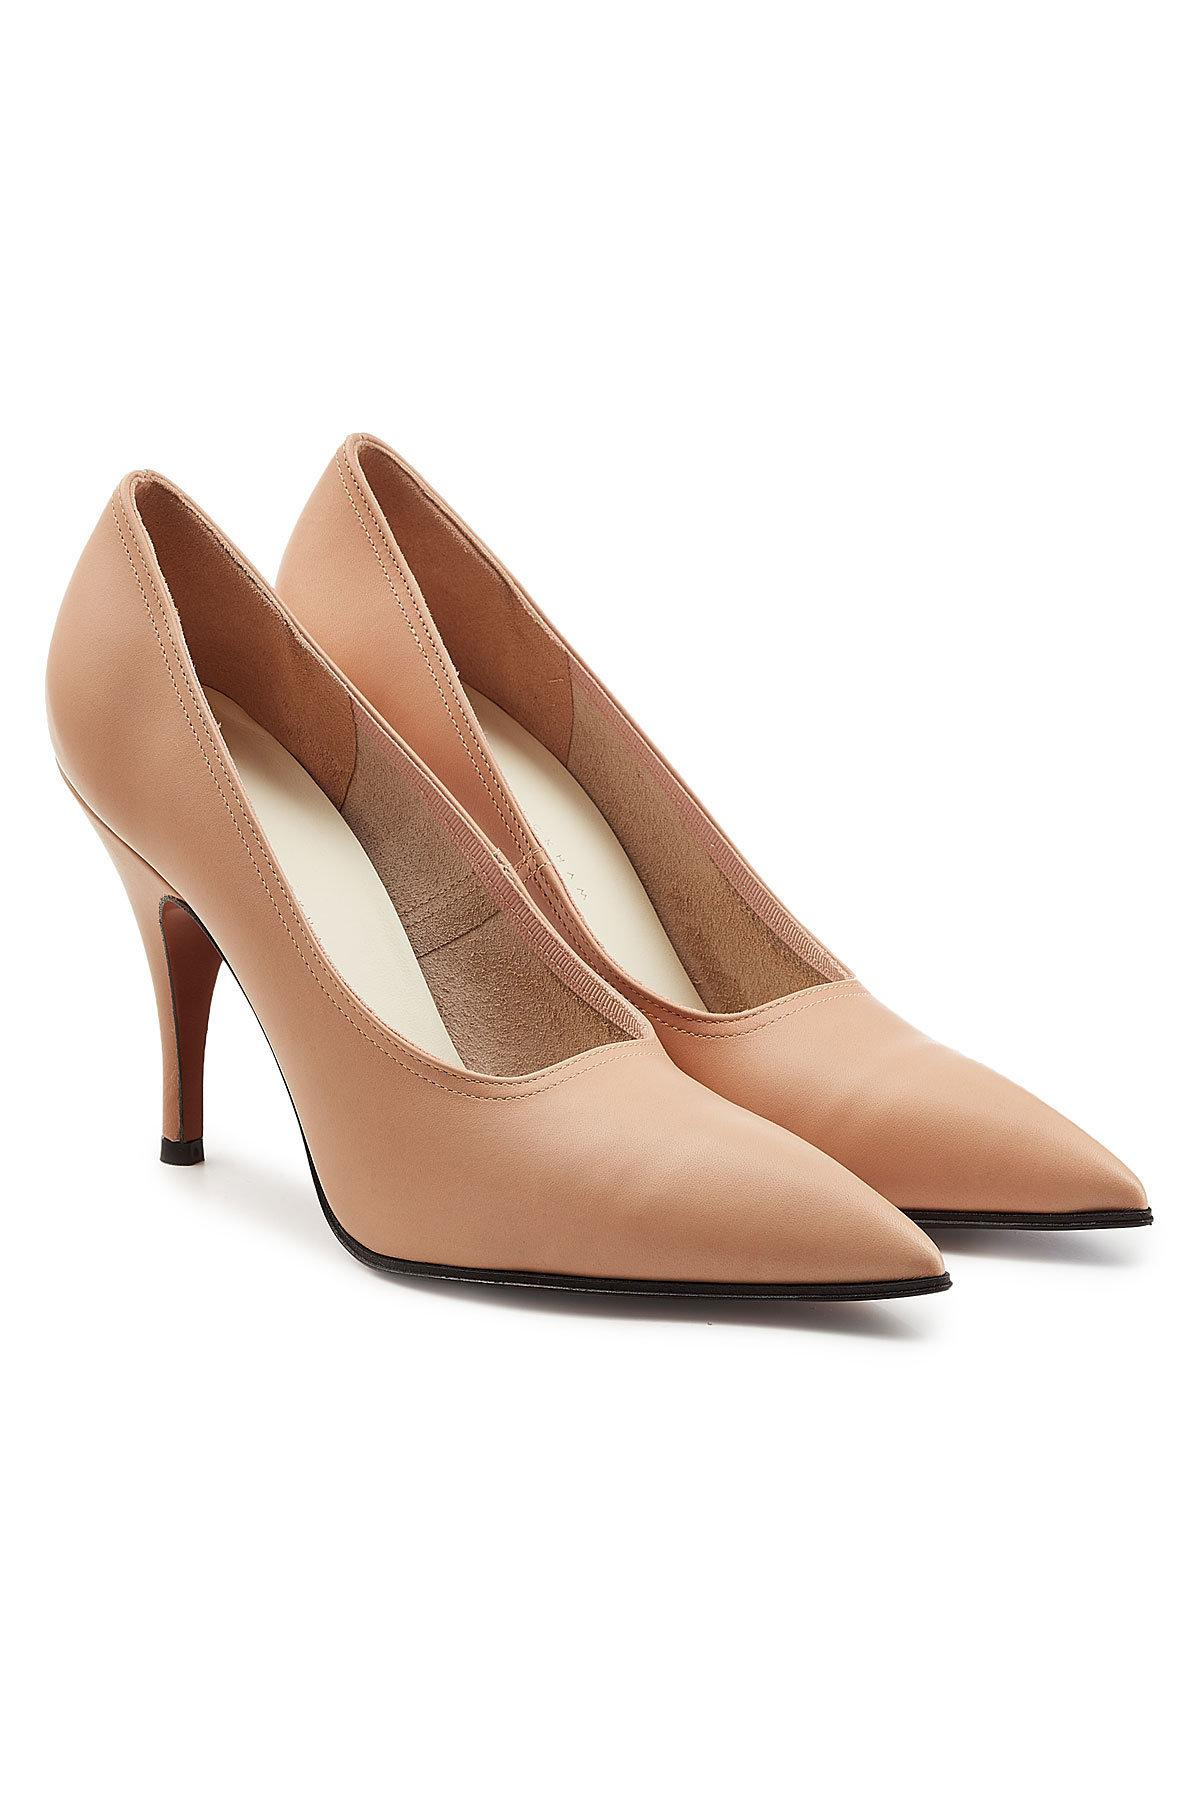 Enjoy For Sale Real Cheap Price Dorothy pumps - Nude & Neutrals Victoria Beckham Sale Get Authentic uOLc3S